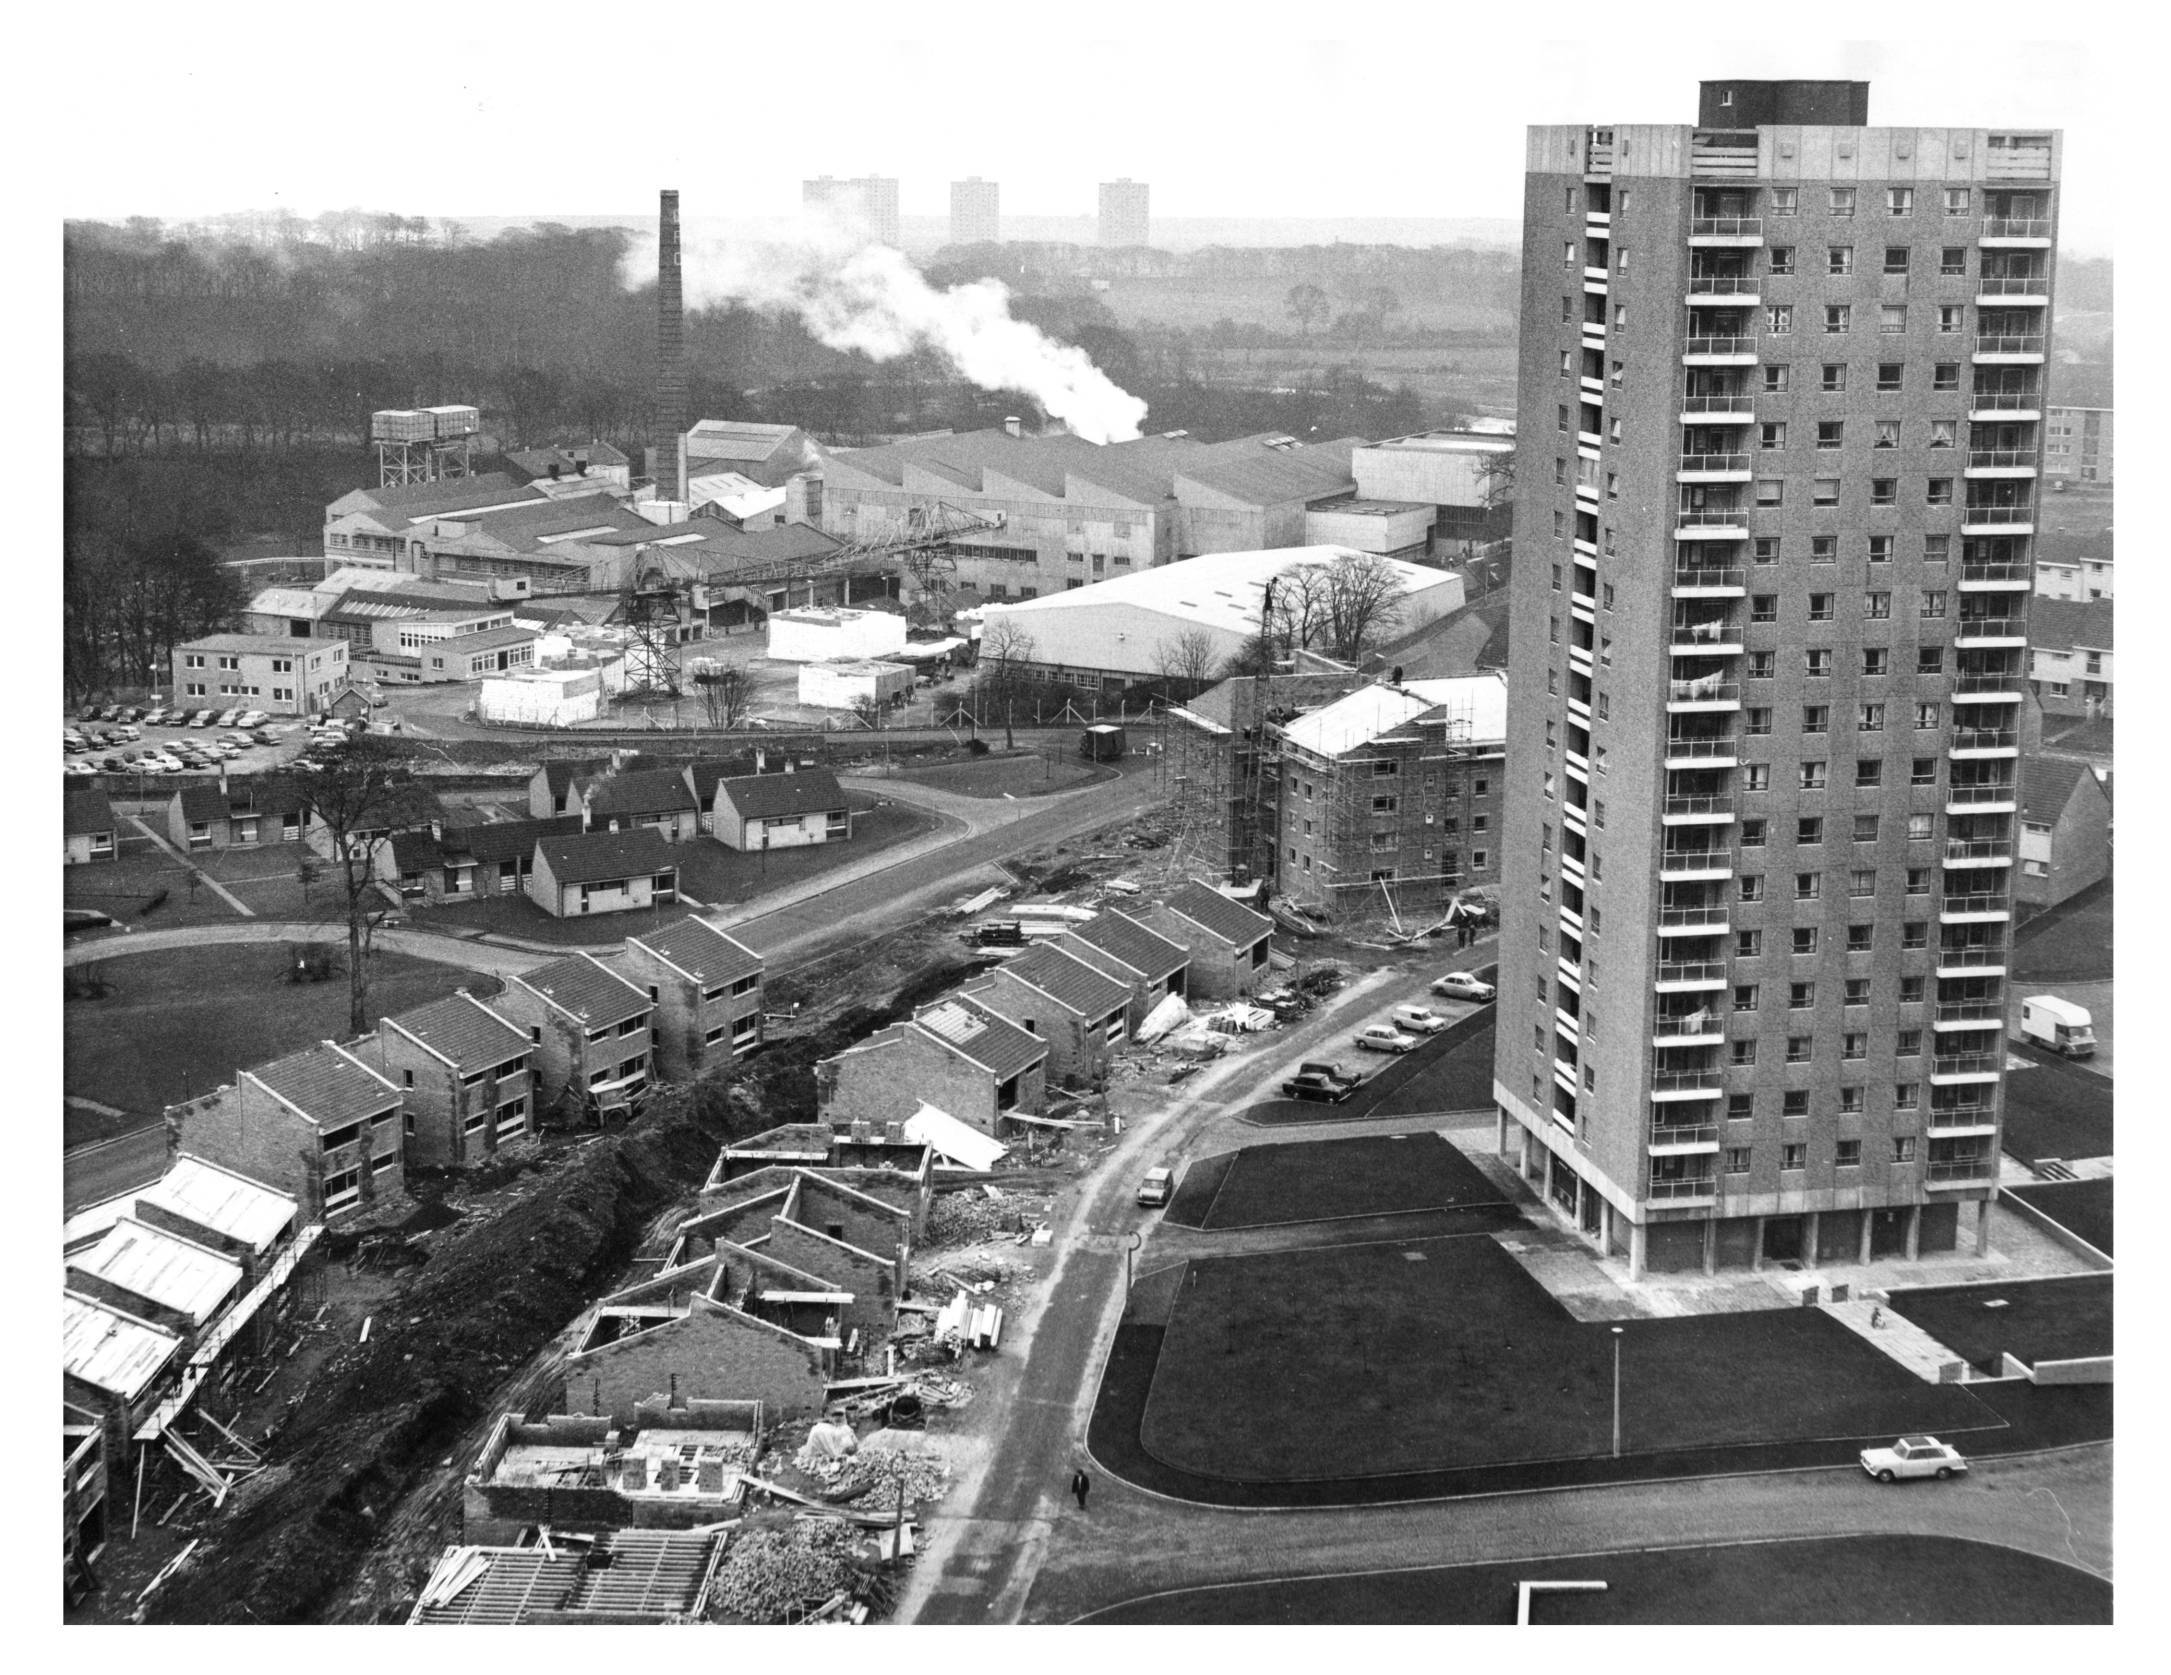 Donside Court, right with its views on to the Donside Paperworks and Seaton high-rises in the distance.